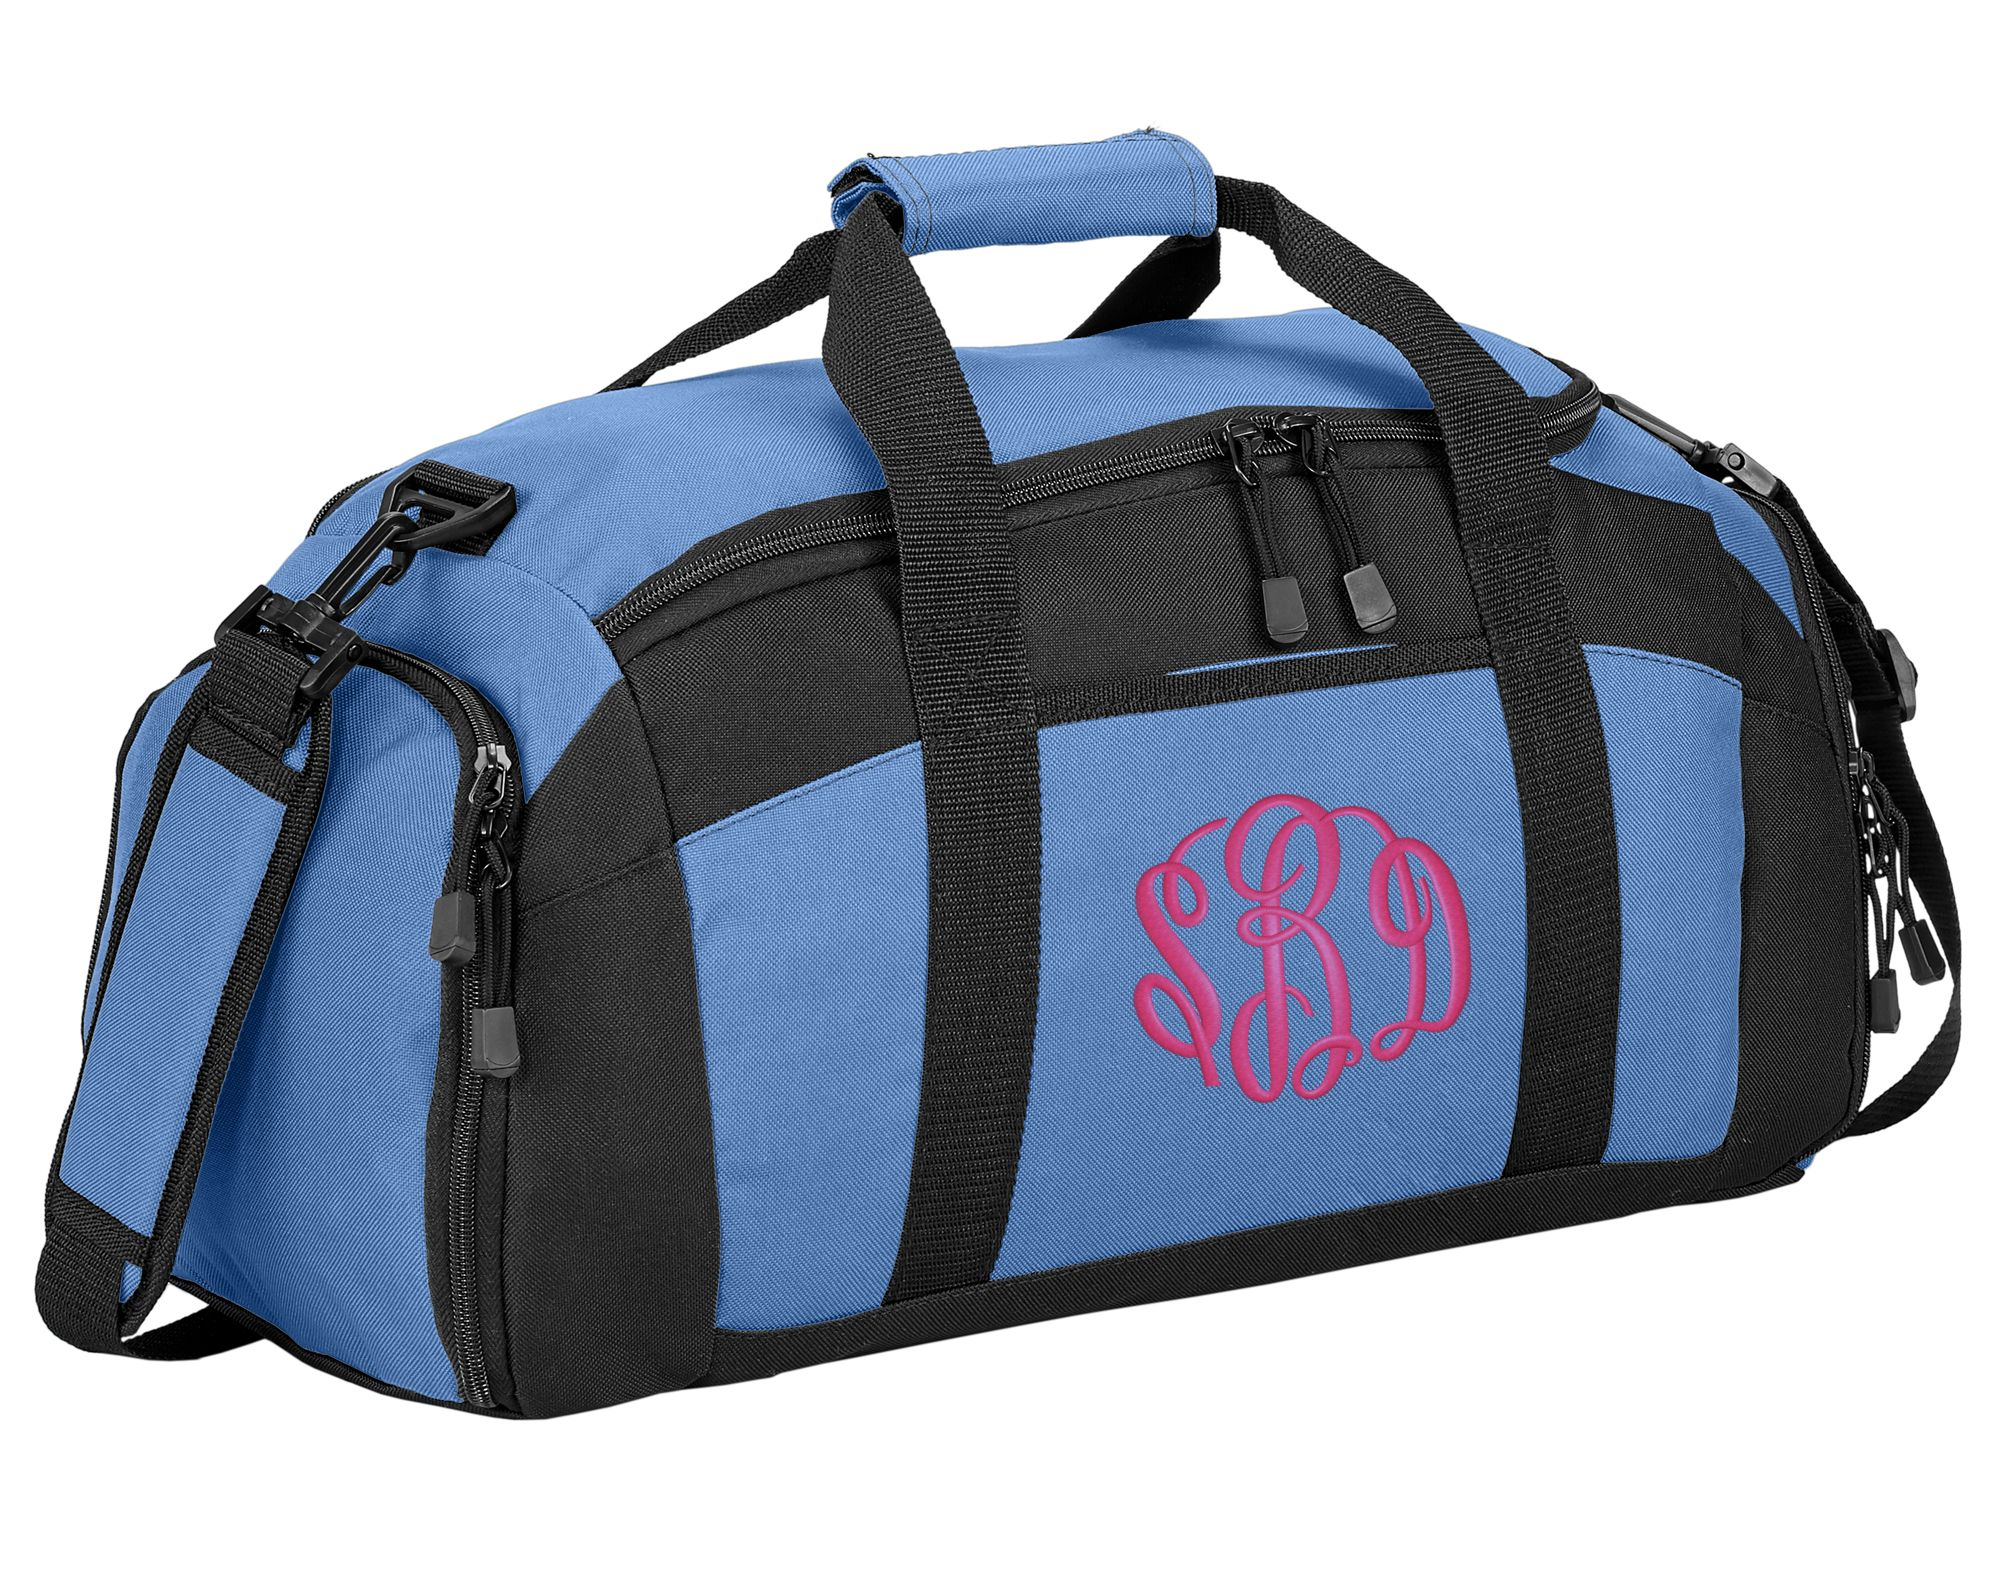 Personalized Hockey Medium Gym Duffel Bag with Custom Text Black//Black Active Sports Bag with Customizable Embroidered Monogram Design